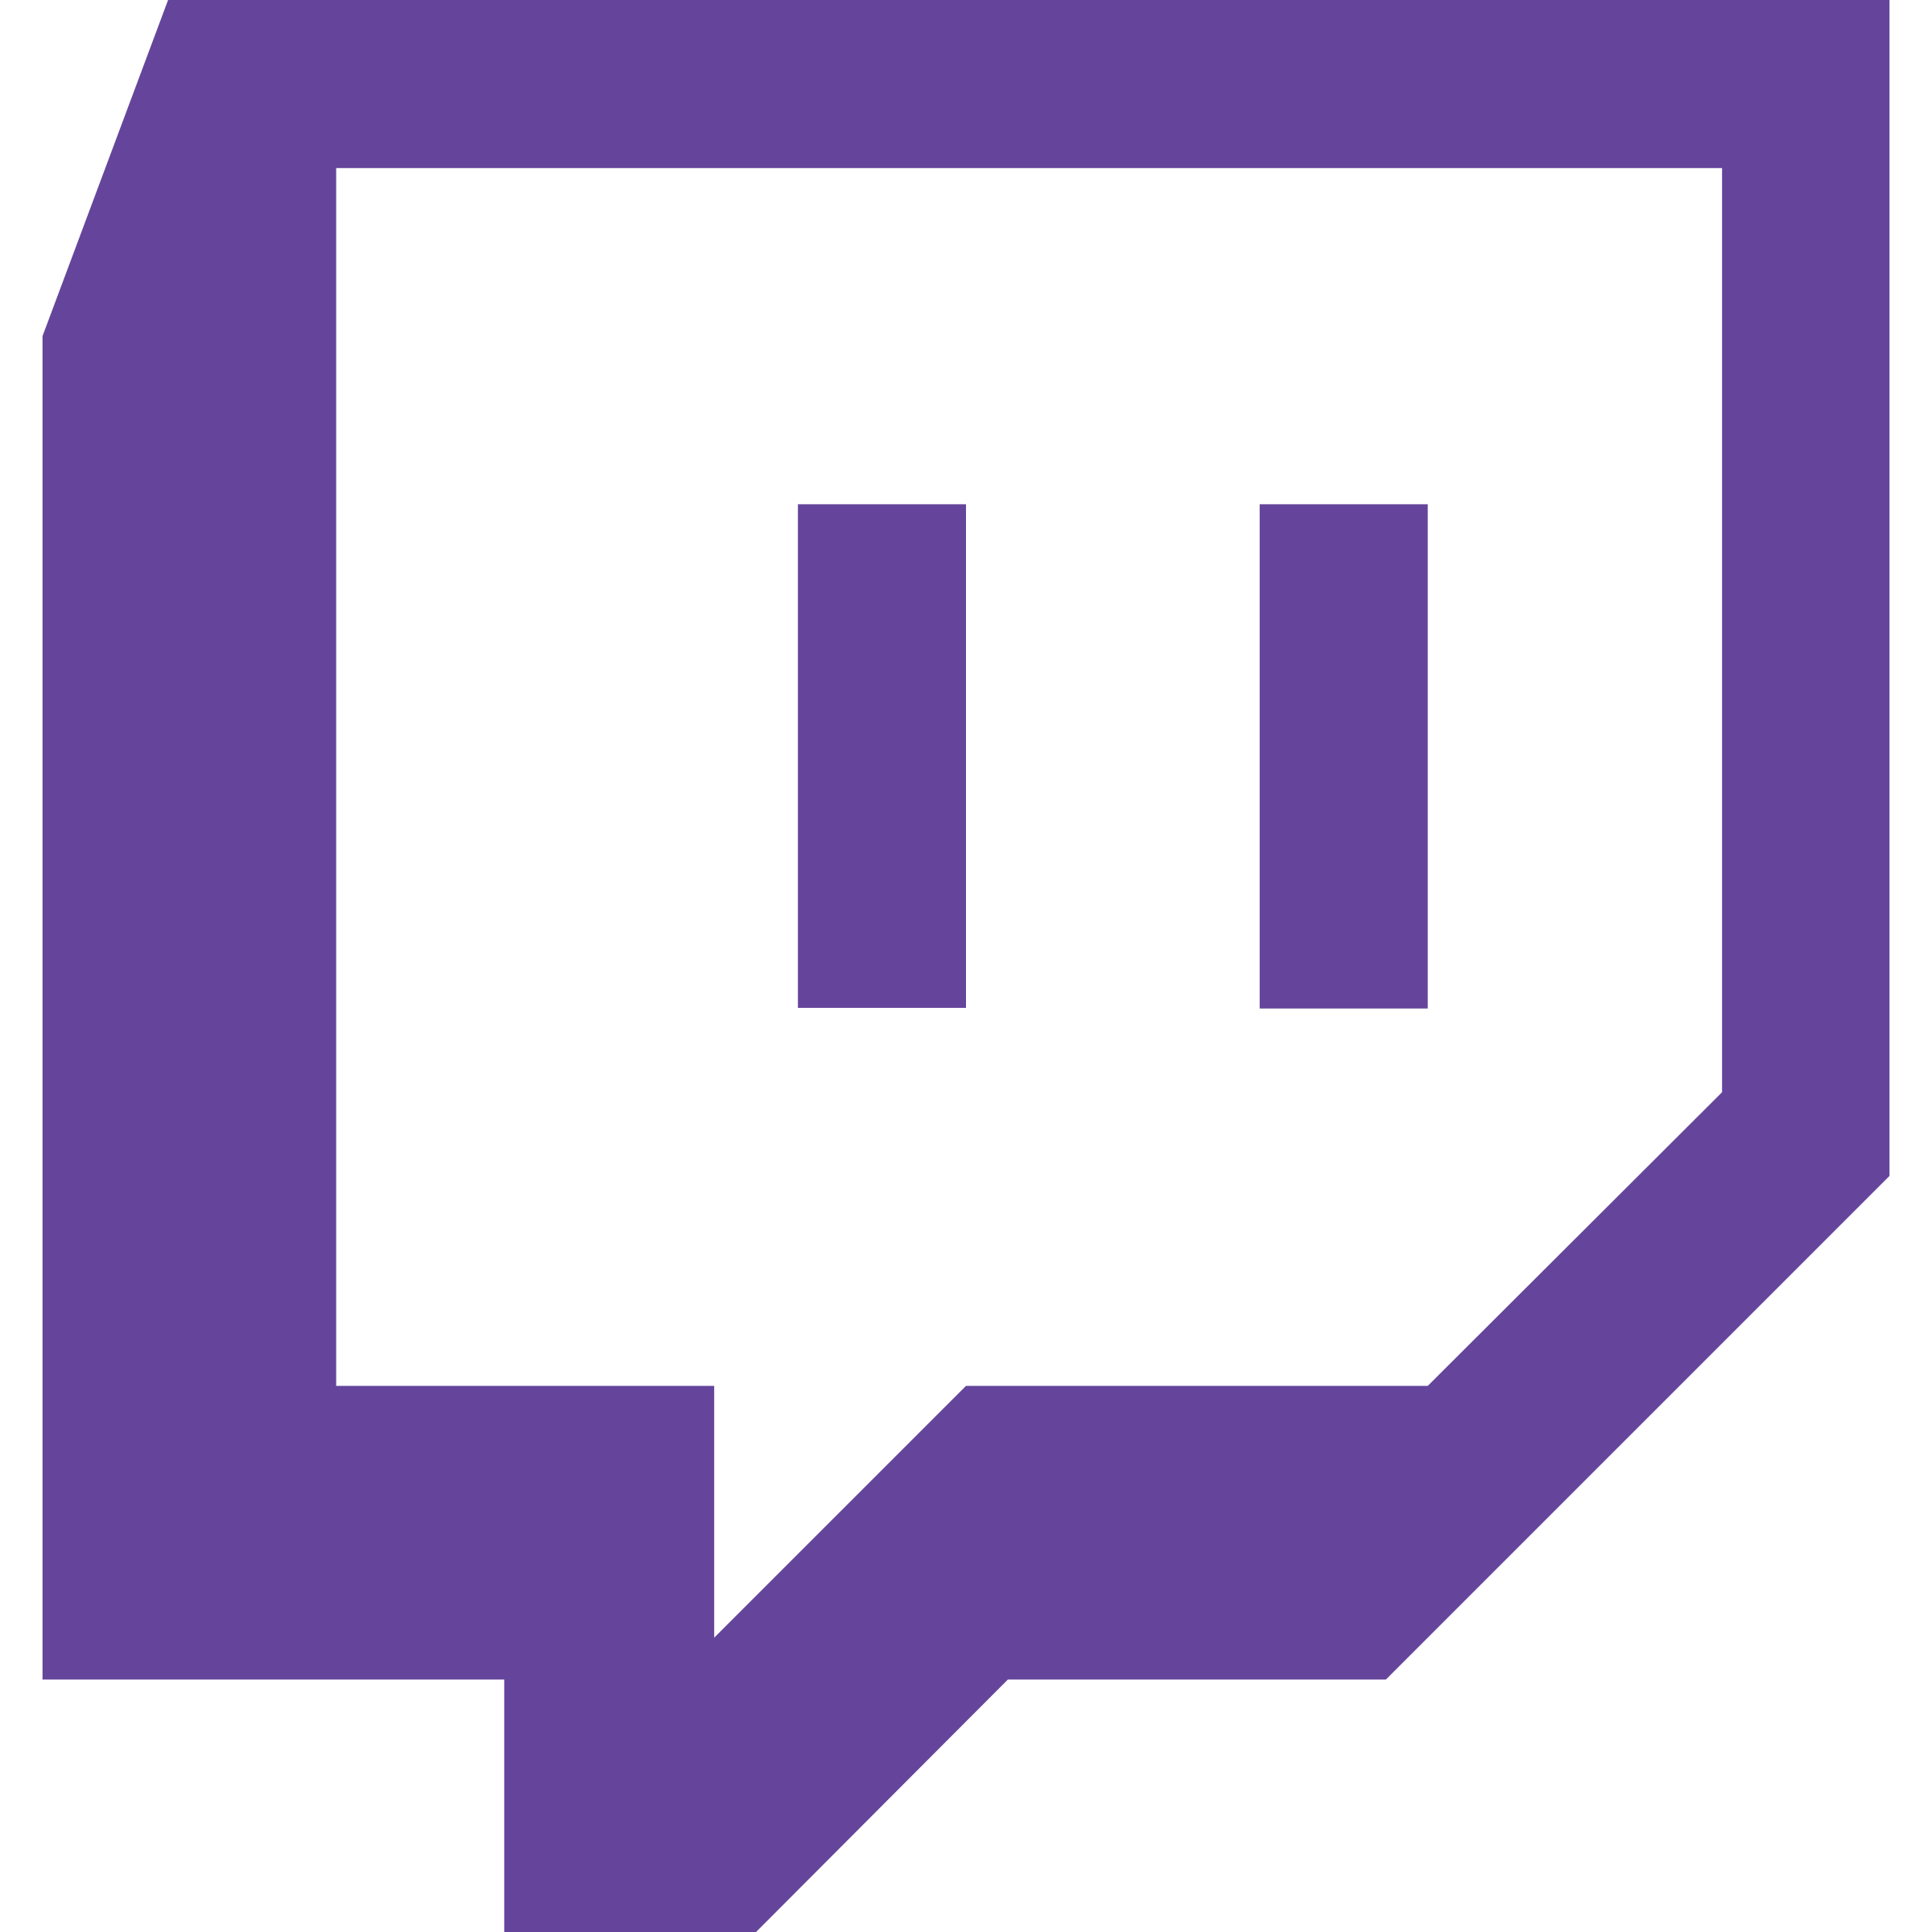 Twitch account with companion program (companion)